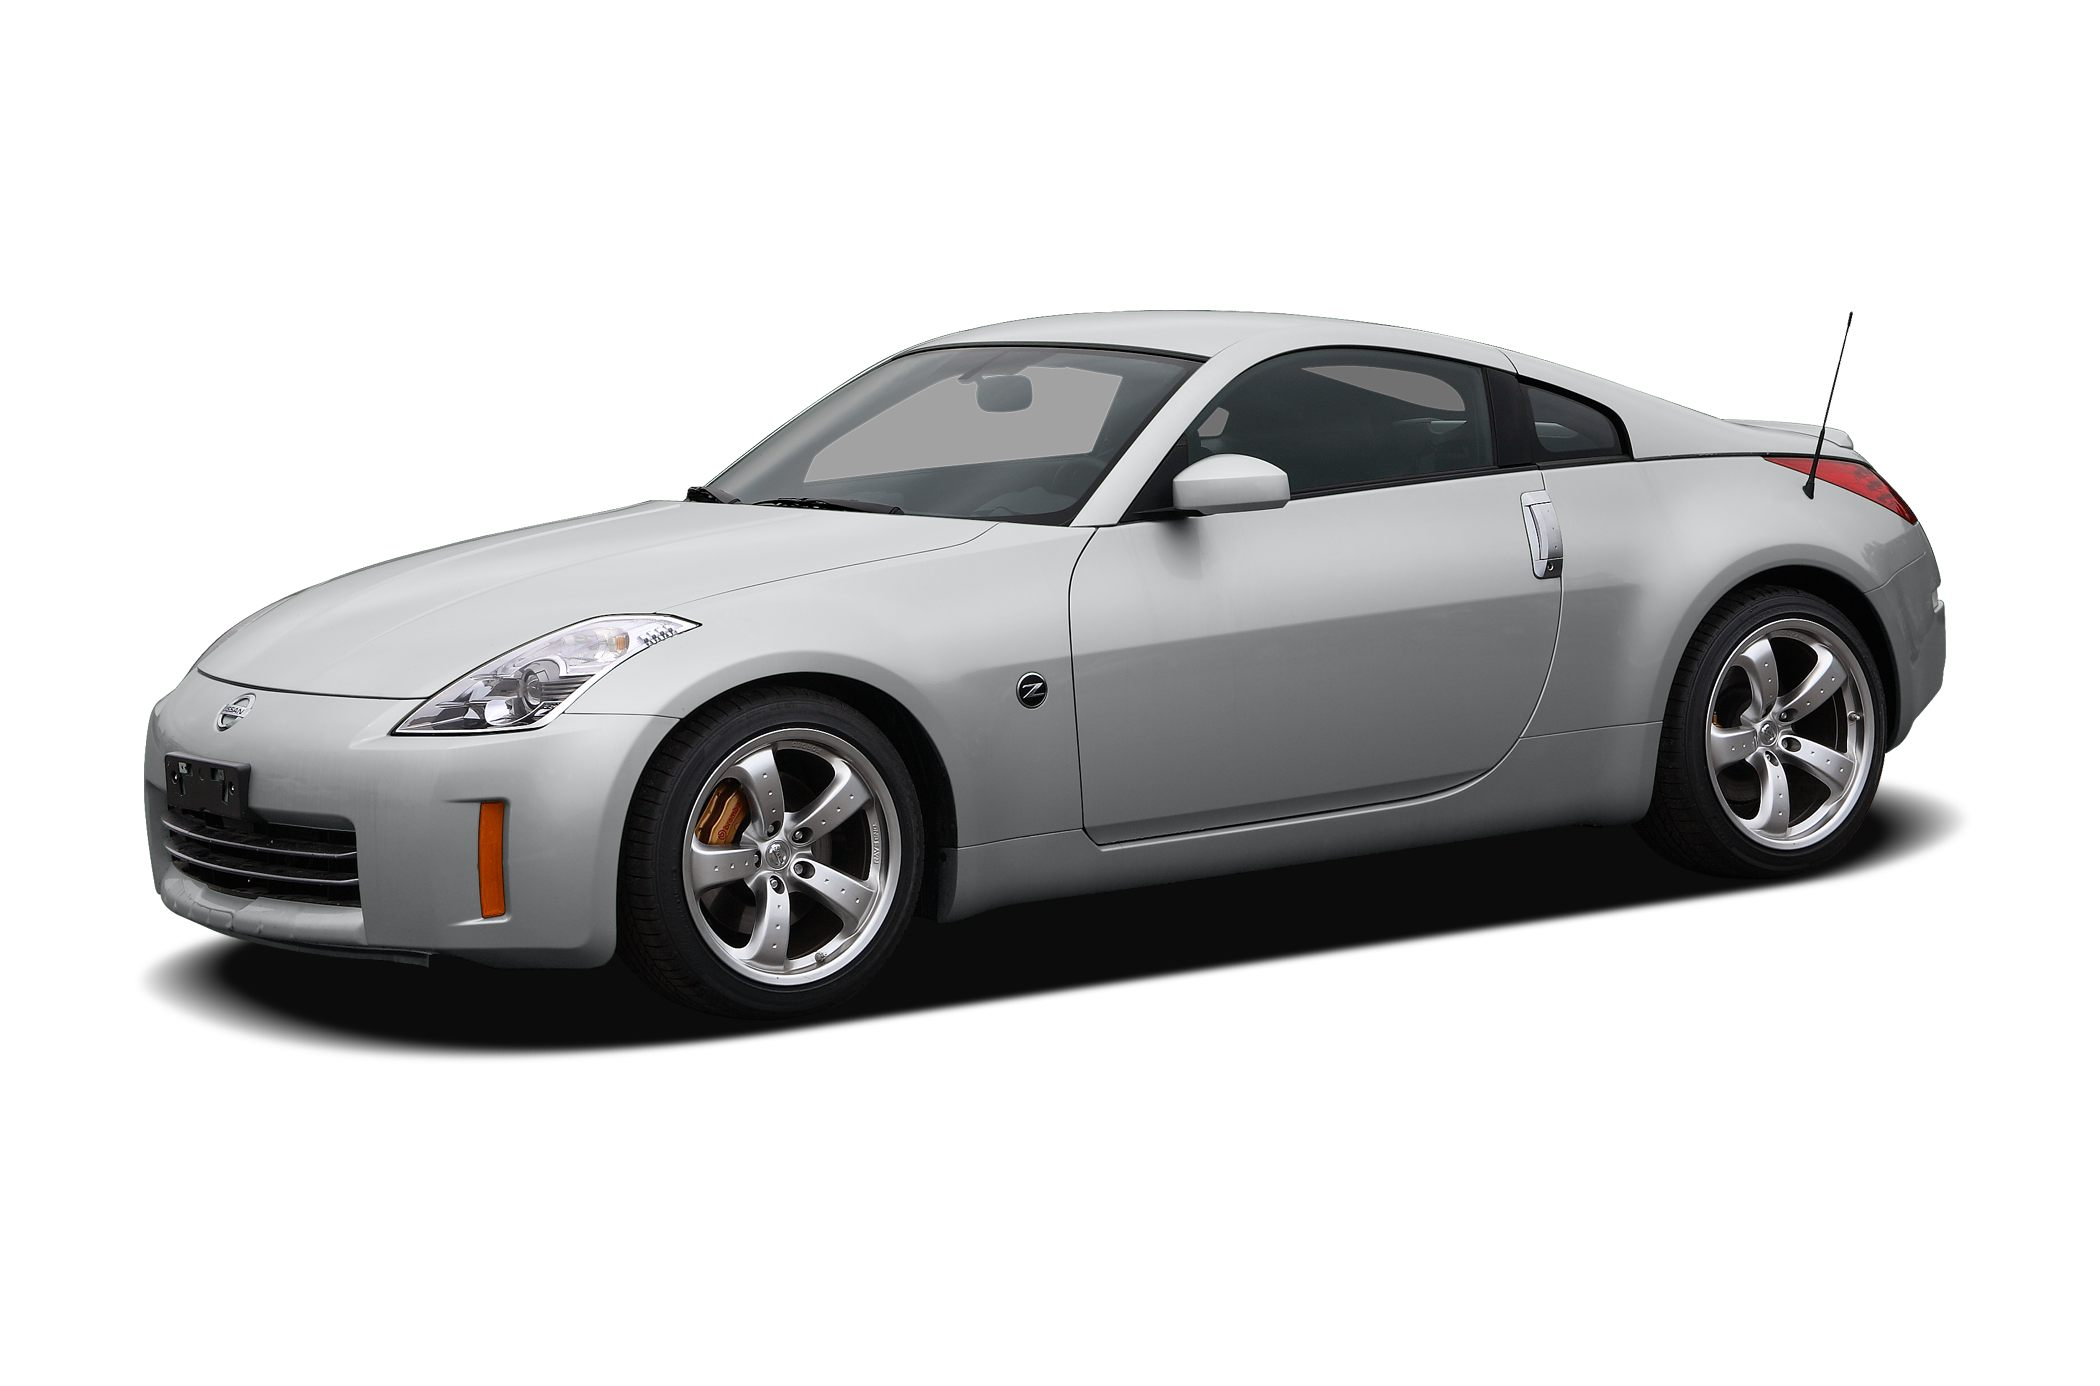 2006 Nissan 350Z Coupe for sale in McHenry for $13,990 with 69,322 miles